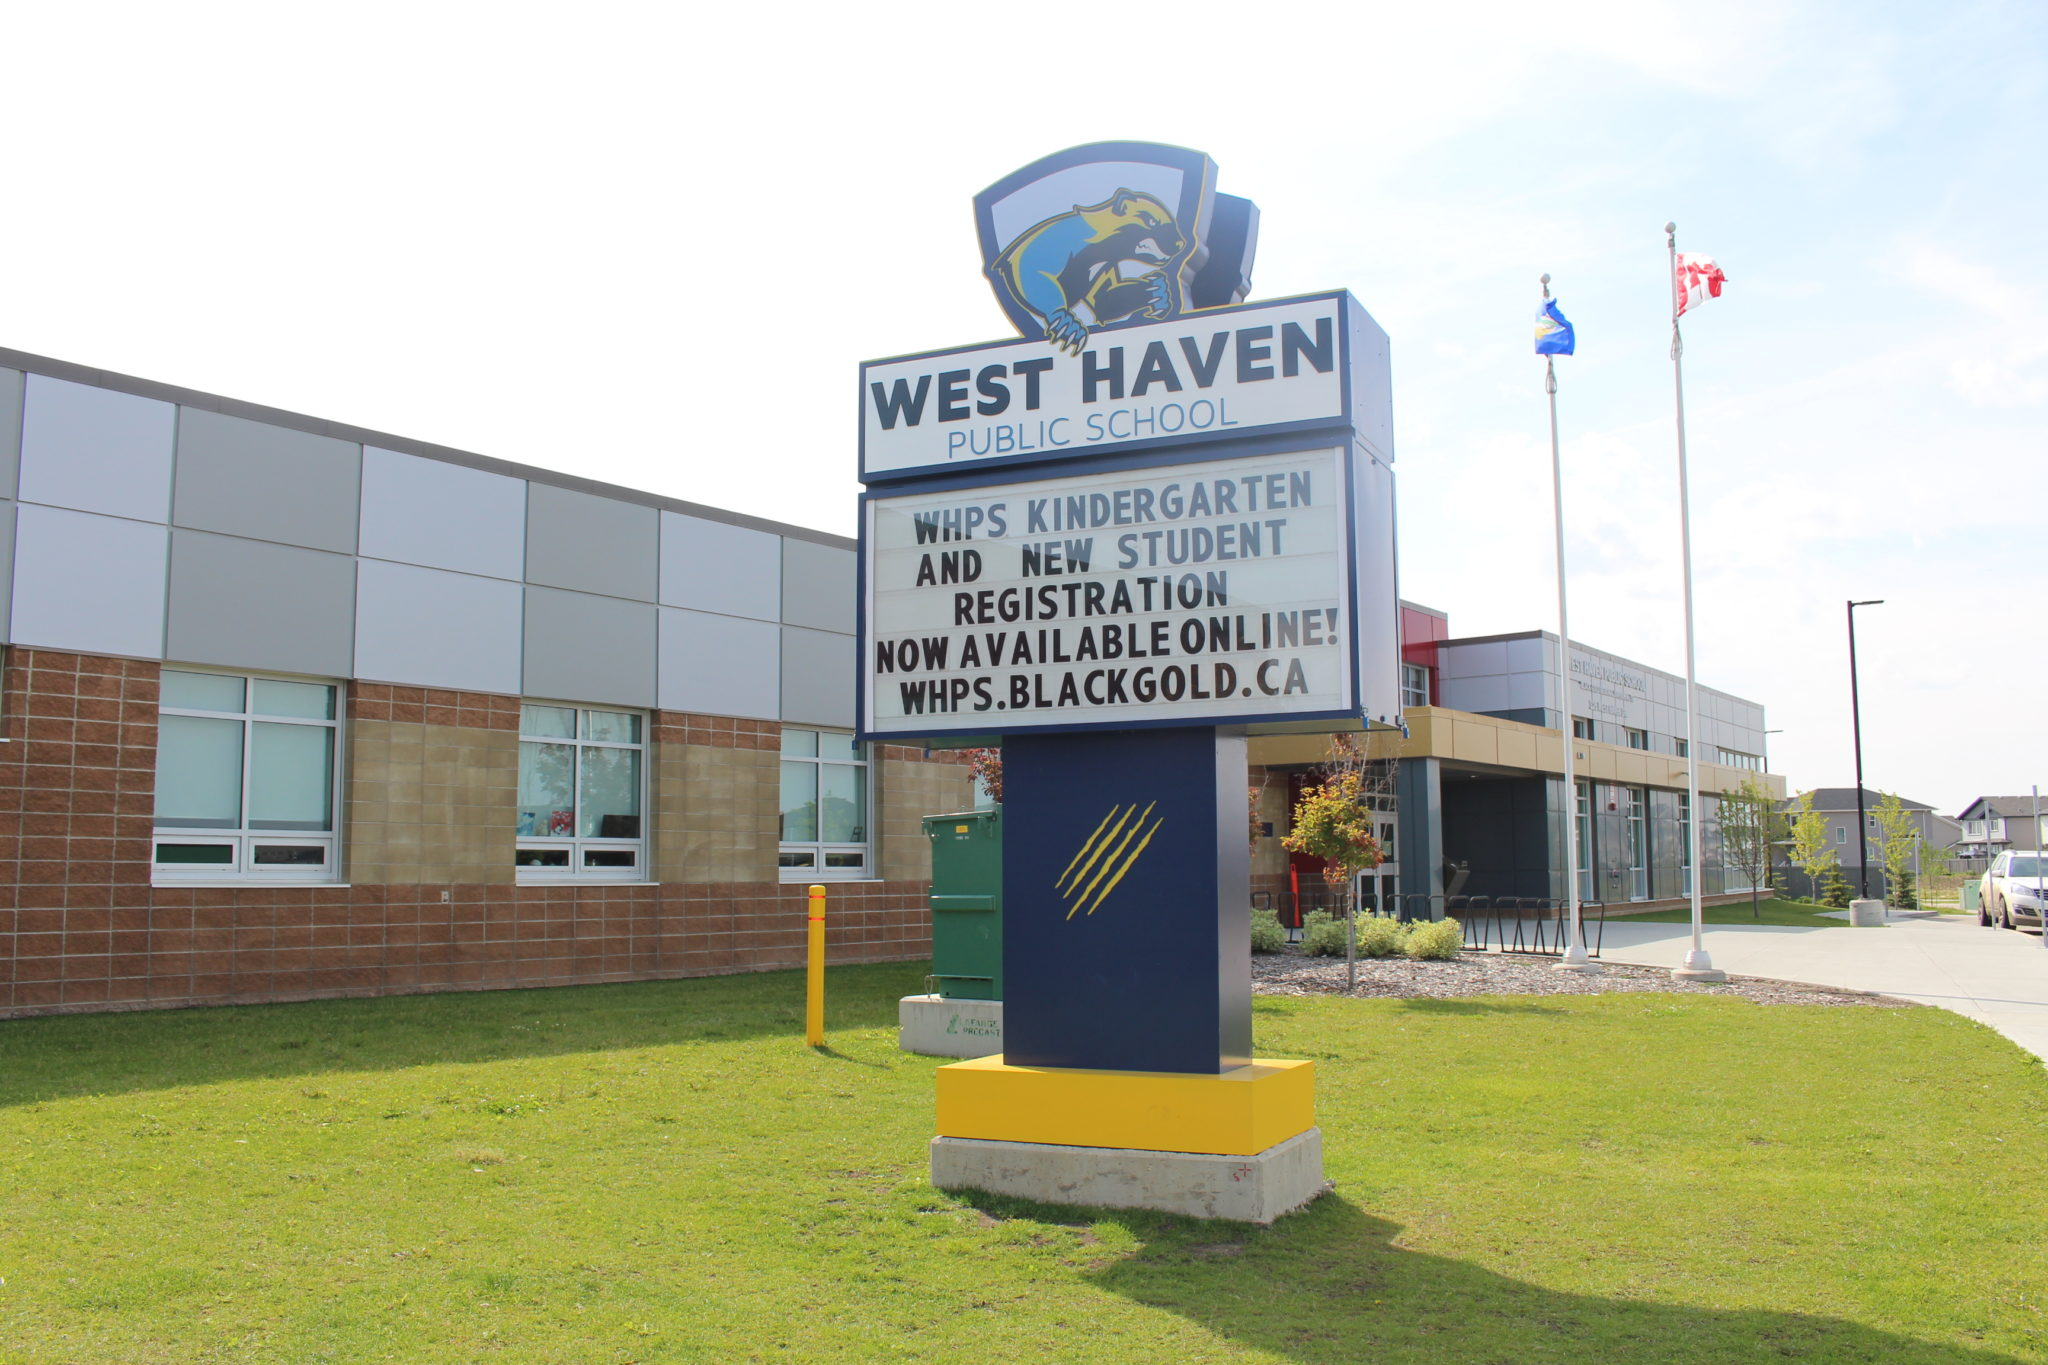 The school pylon sign at West Haven School in Leduc. Move to the City of Leduc and discover life here.